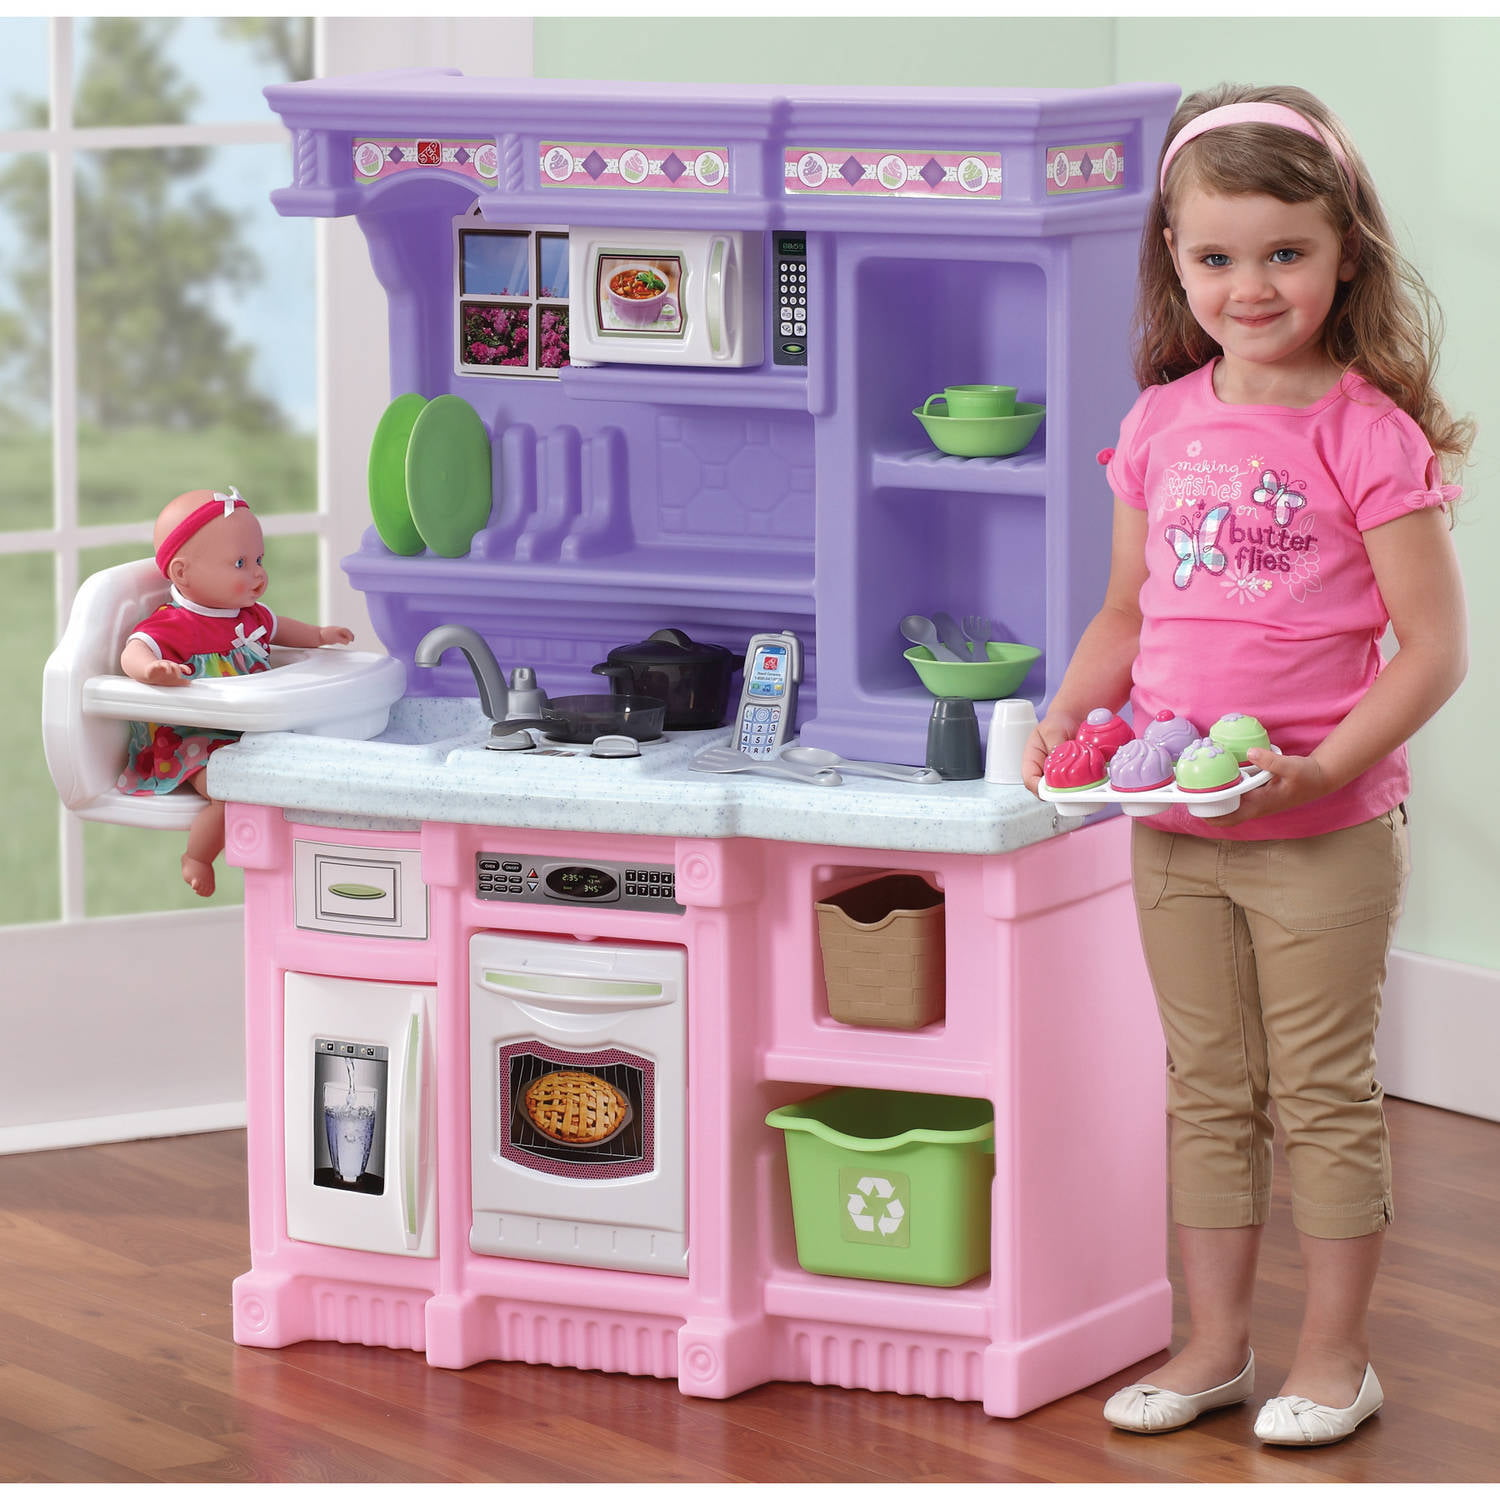 54343eeb021 Step2 Little Bakers Kitchen Kids Pink 733538825196